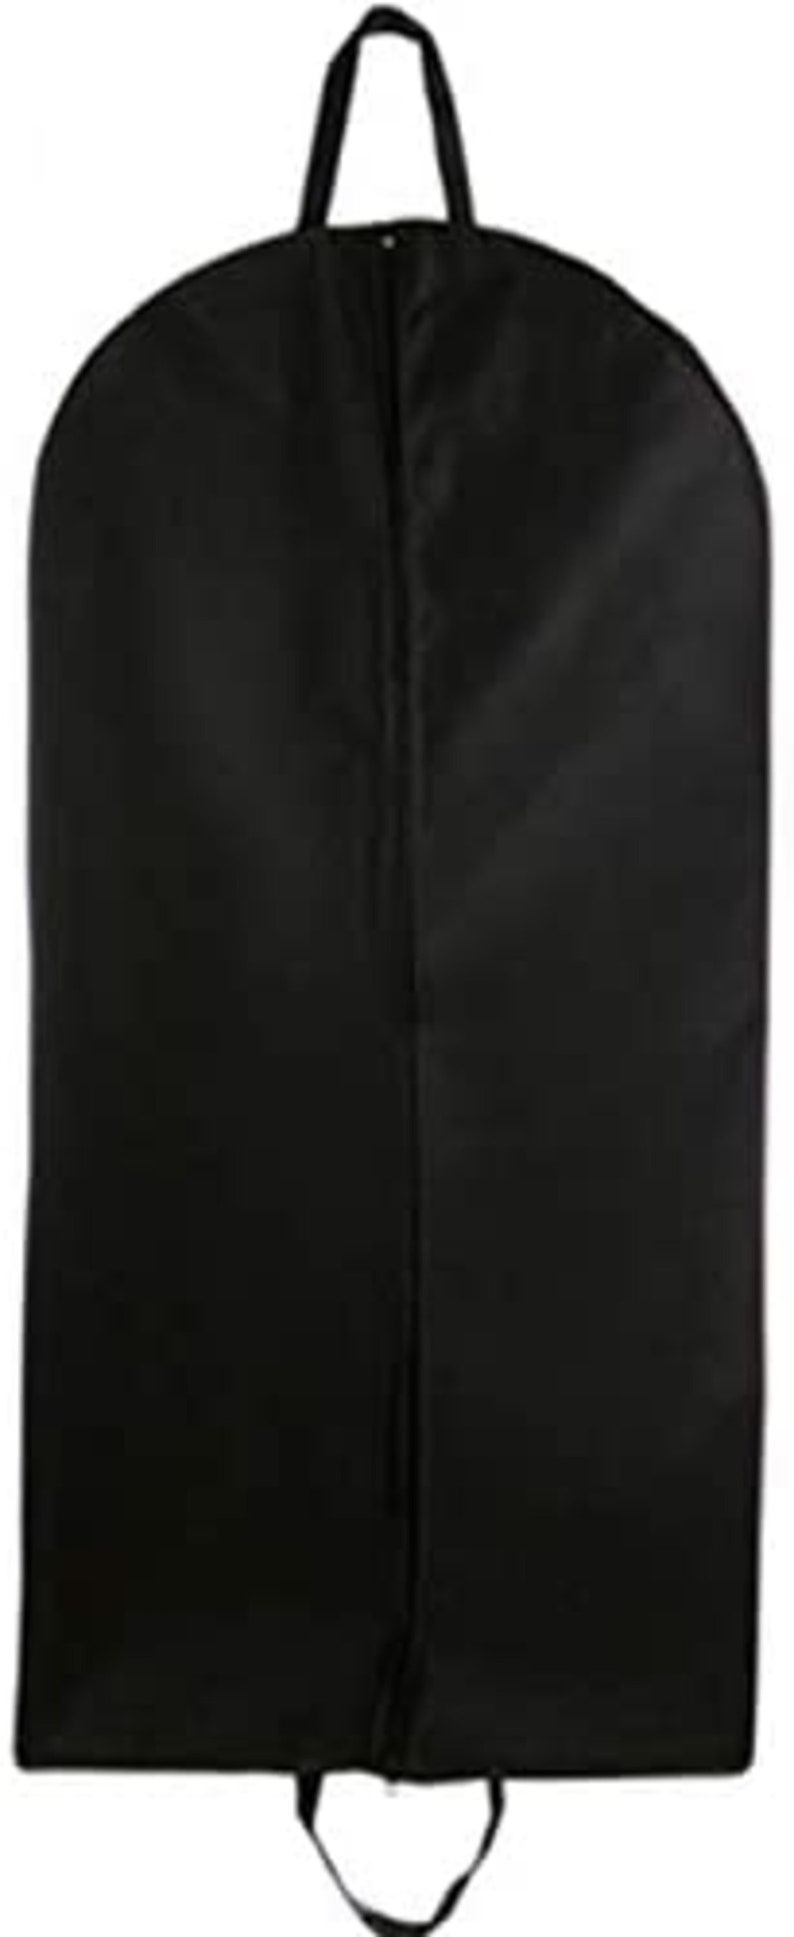 Extra Long Breathable Graduation Gown Bag Priest Vestment Garment Bag and Choir Robe Garment Bag 72 x 24 Inches